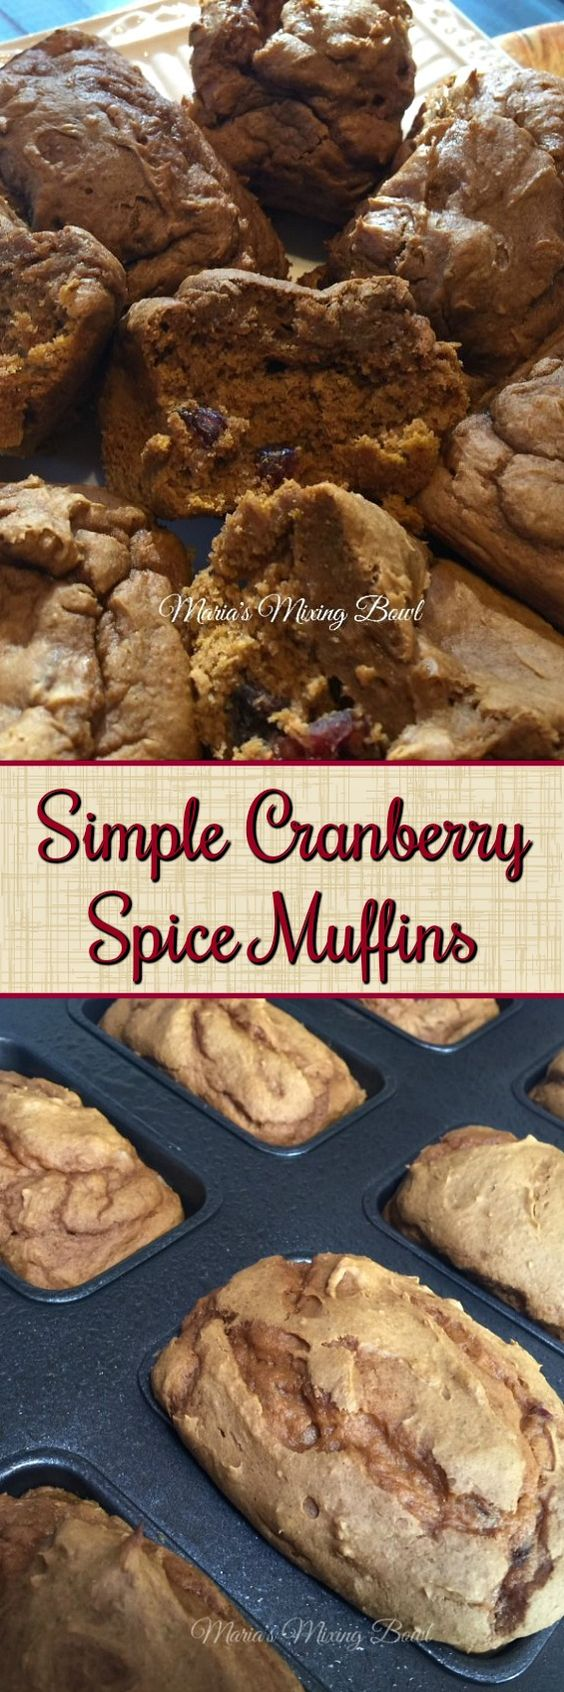 Simple Cranberry Spice Muffins - An easy delicious muffin that takes just minutes to make.  Perfect for breakfast, a snack  or dessert.